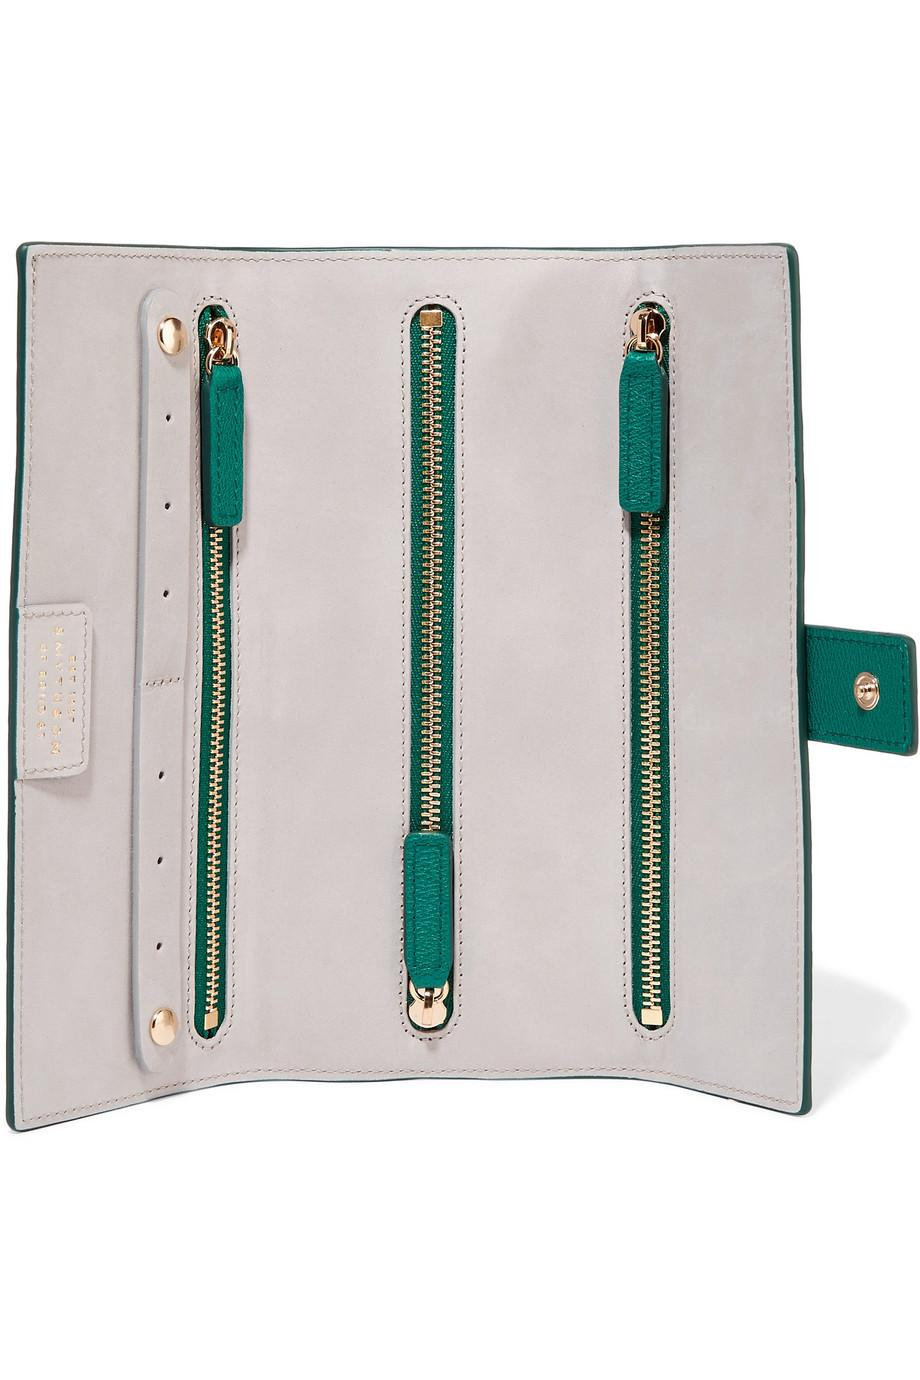 424131b62038 Lyst - Smythson Grosvenor Textured-leather Jewelry Case in Green